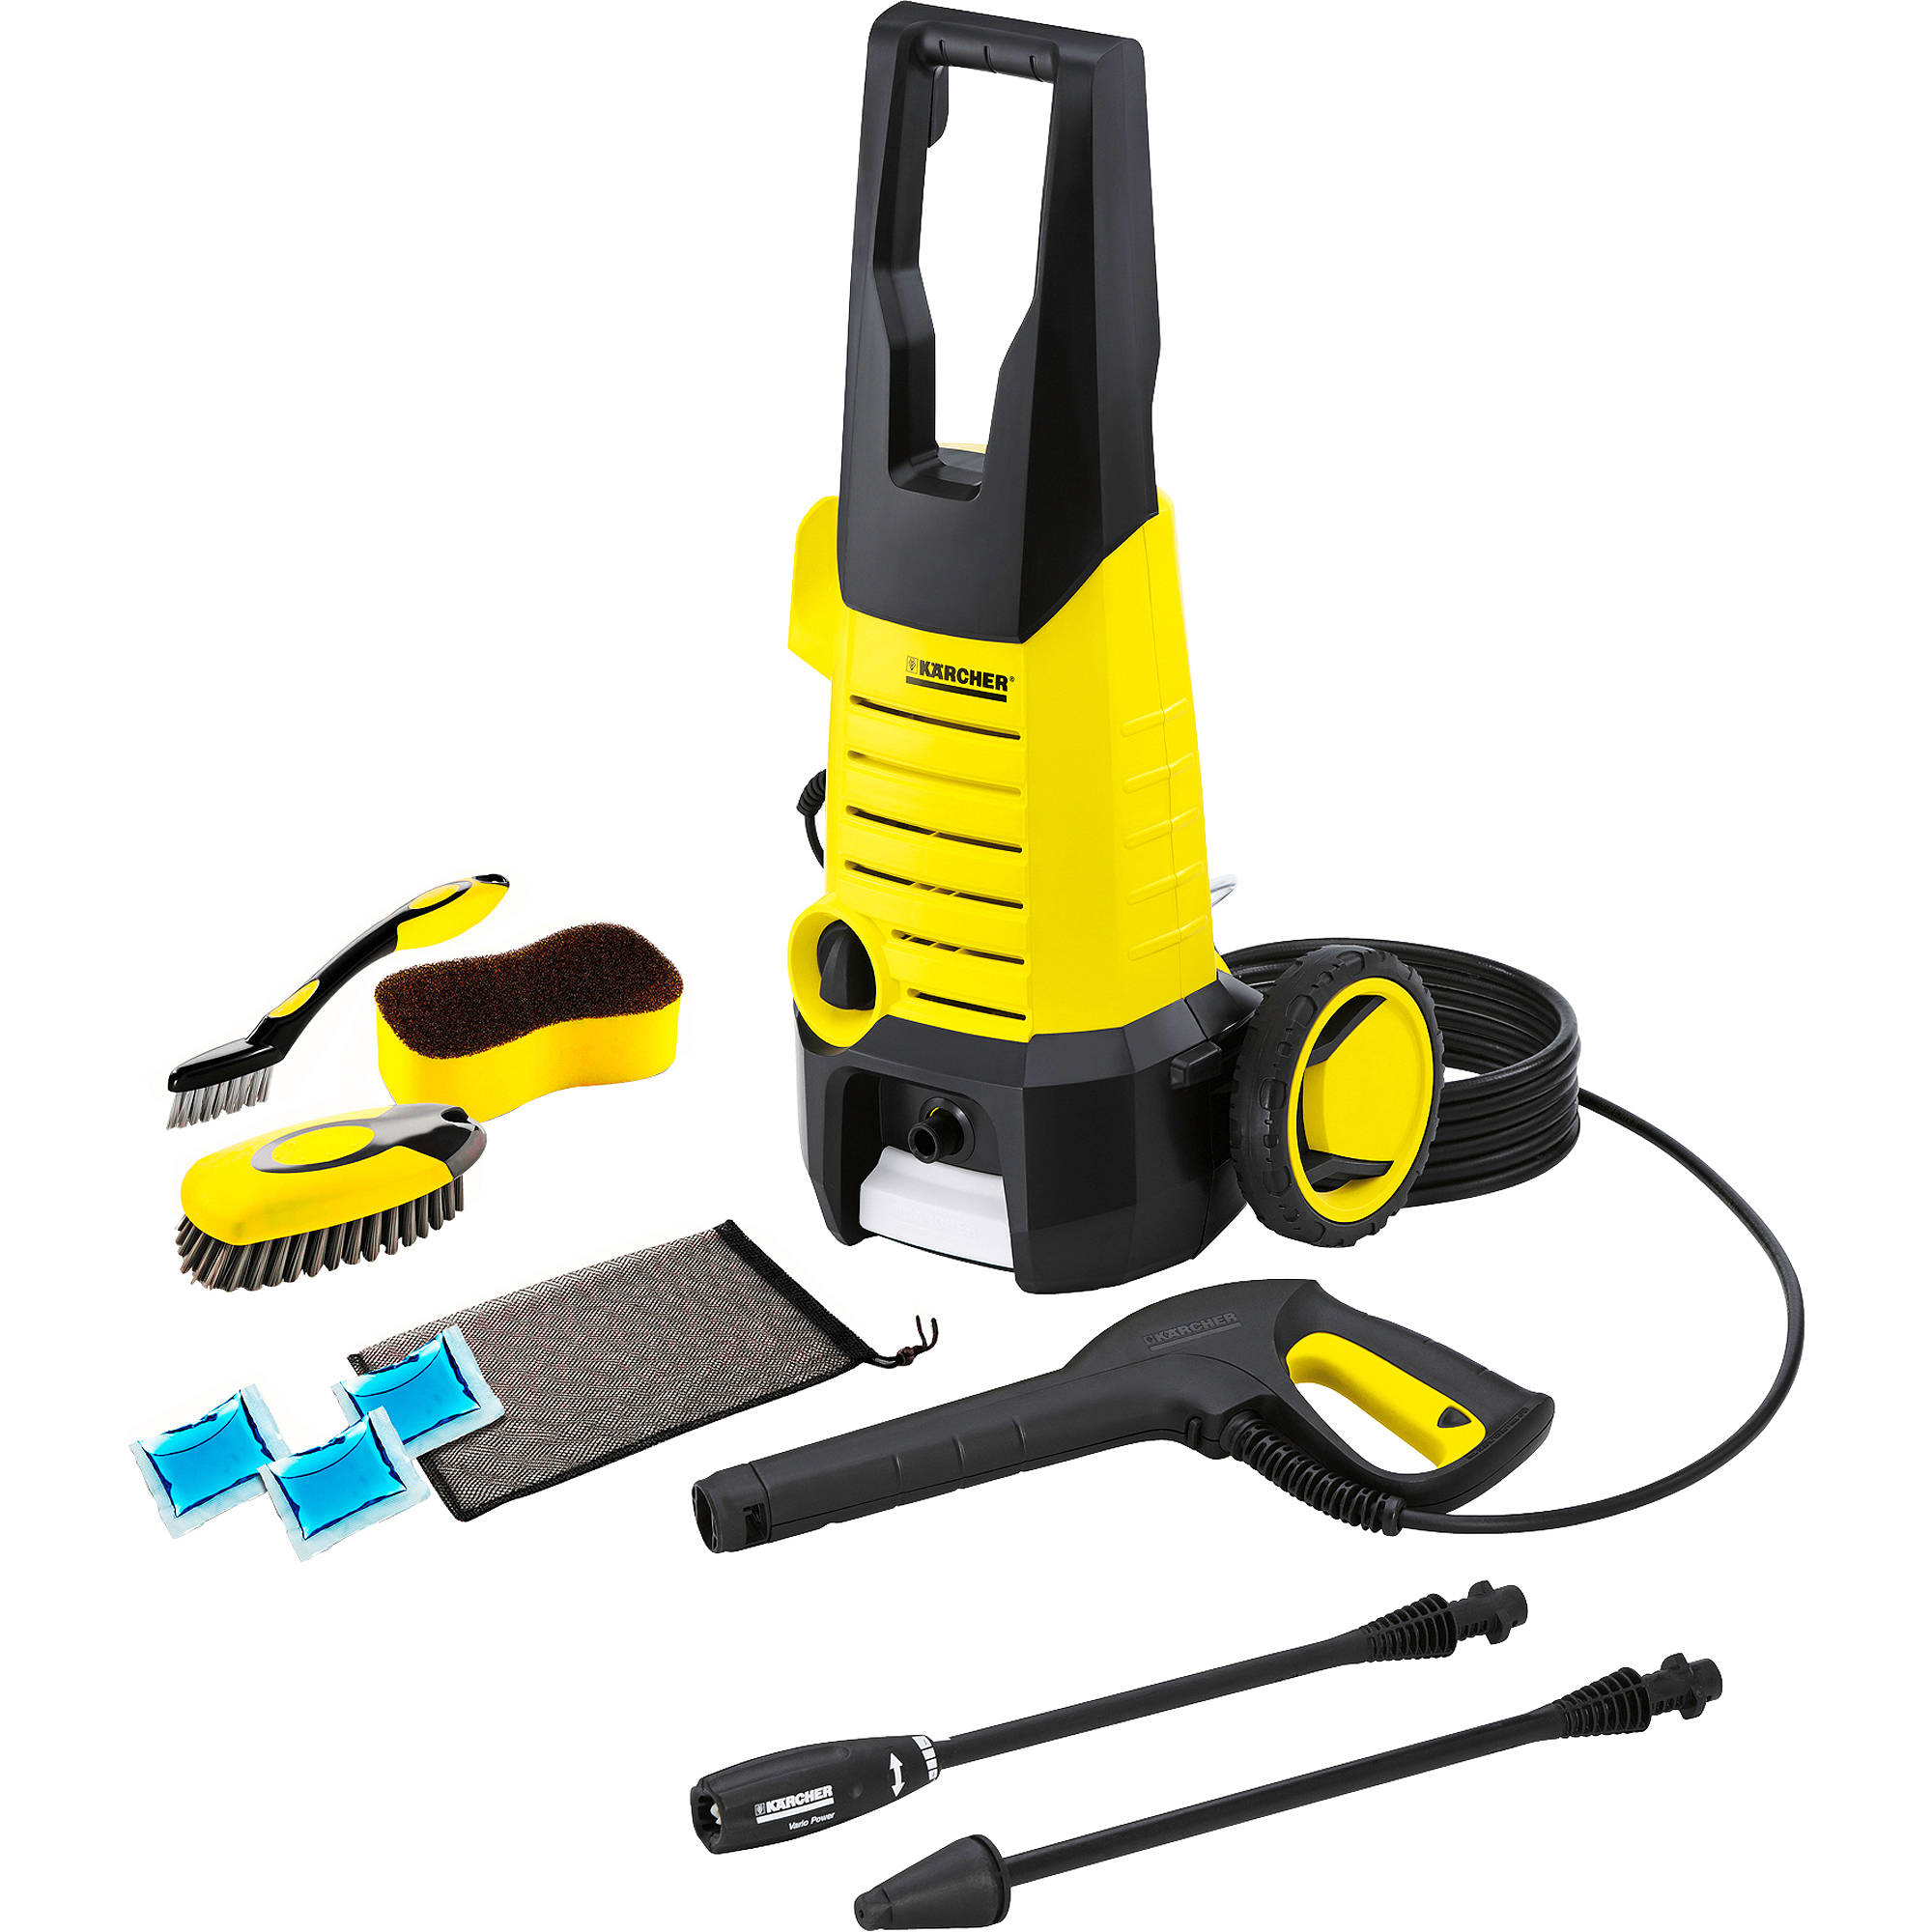 sc 1 st  Walmart : karcher power washer hose - www.happyfamilyinstitute.com